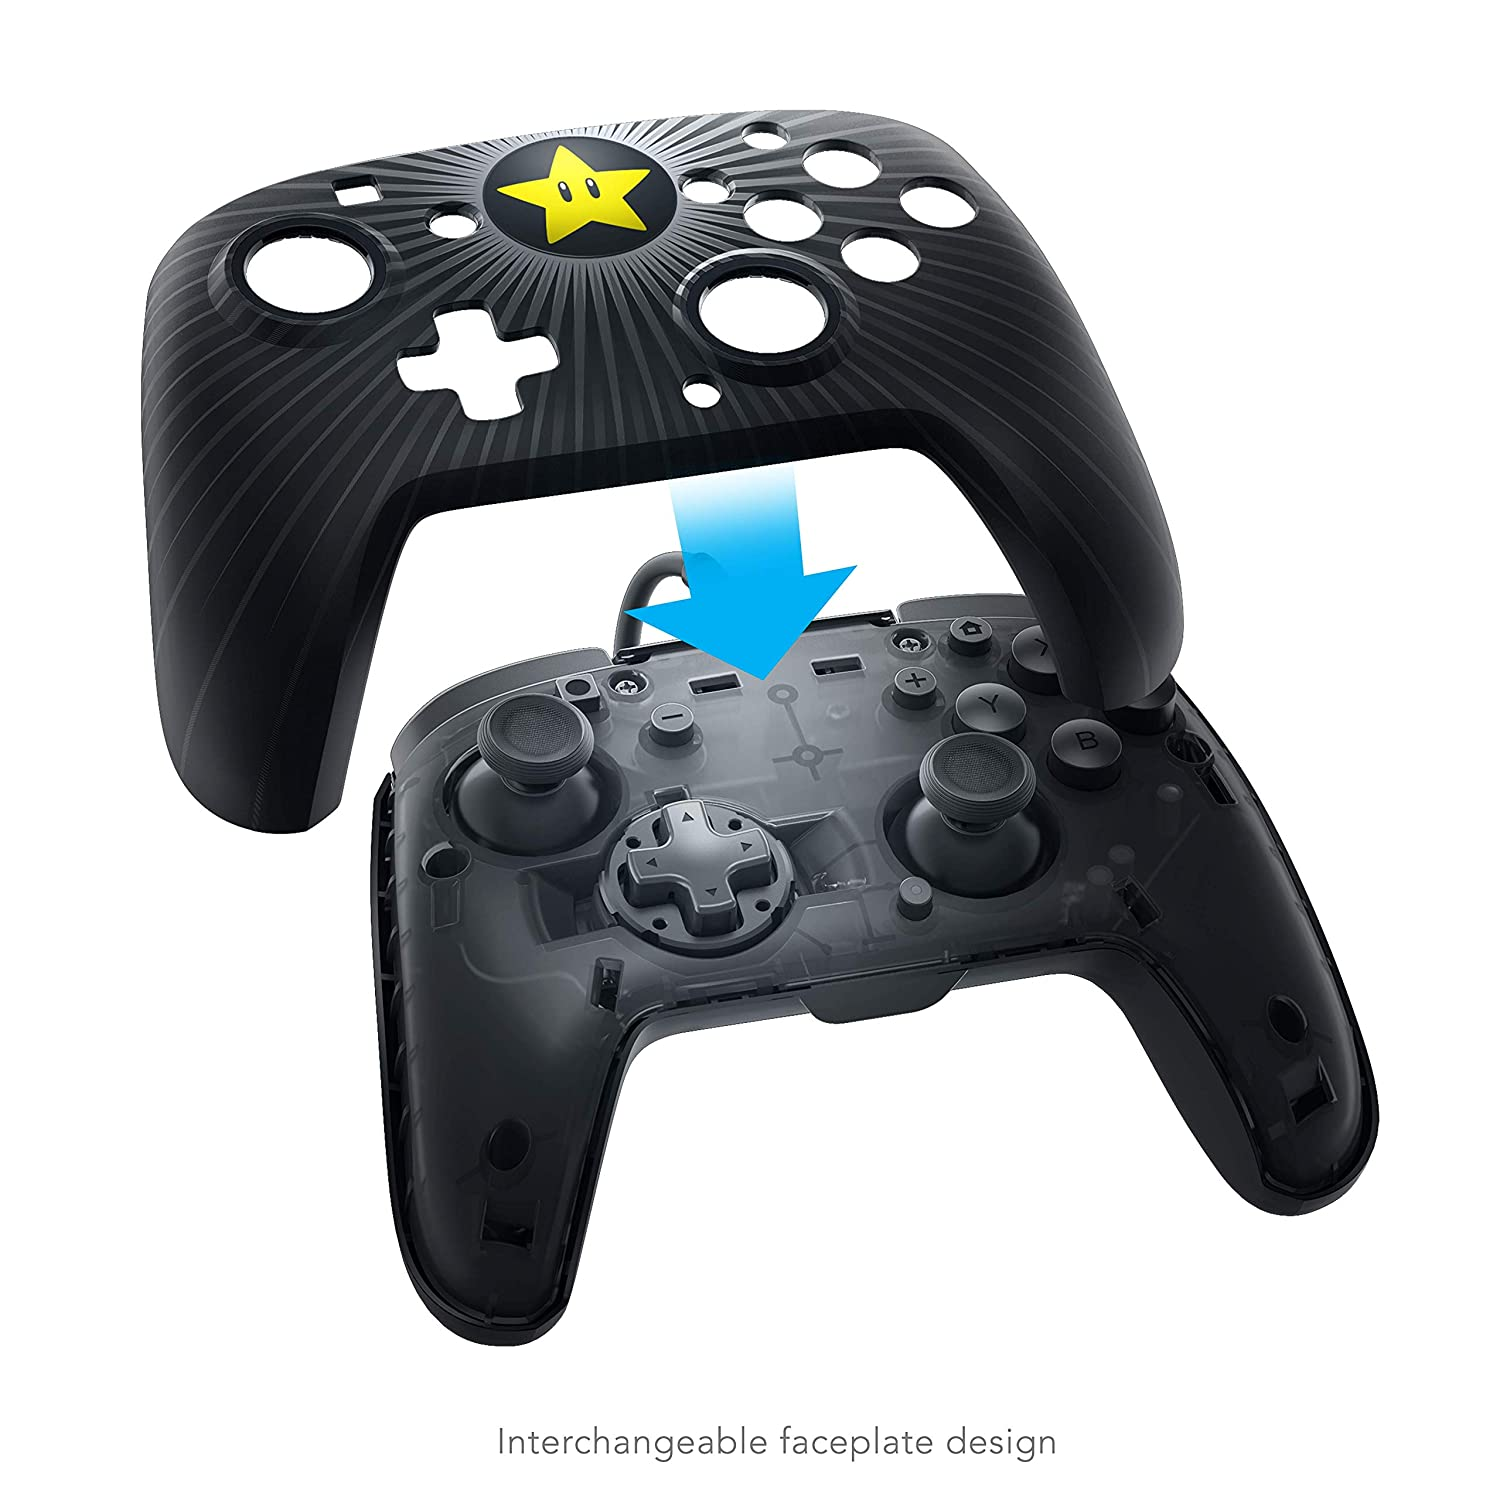 Pdp Gaming Wired Pro Controller Faceplate Black Mario Star Nintendo Switch Faceoff Video Games